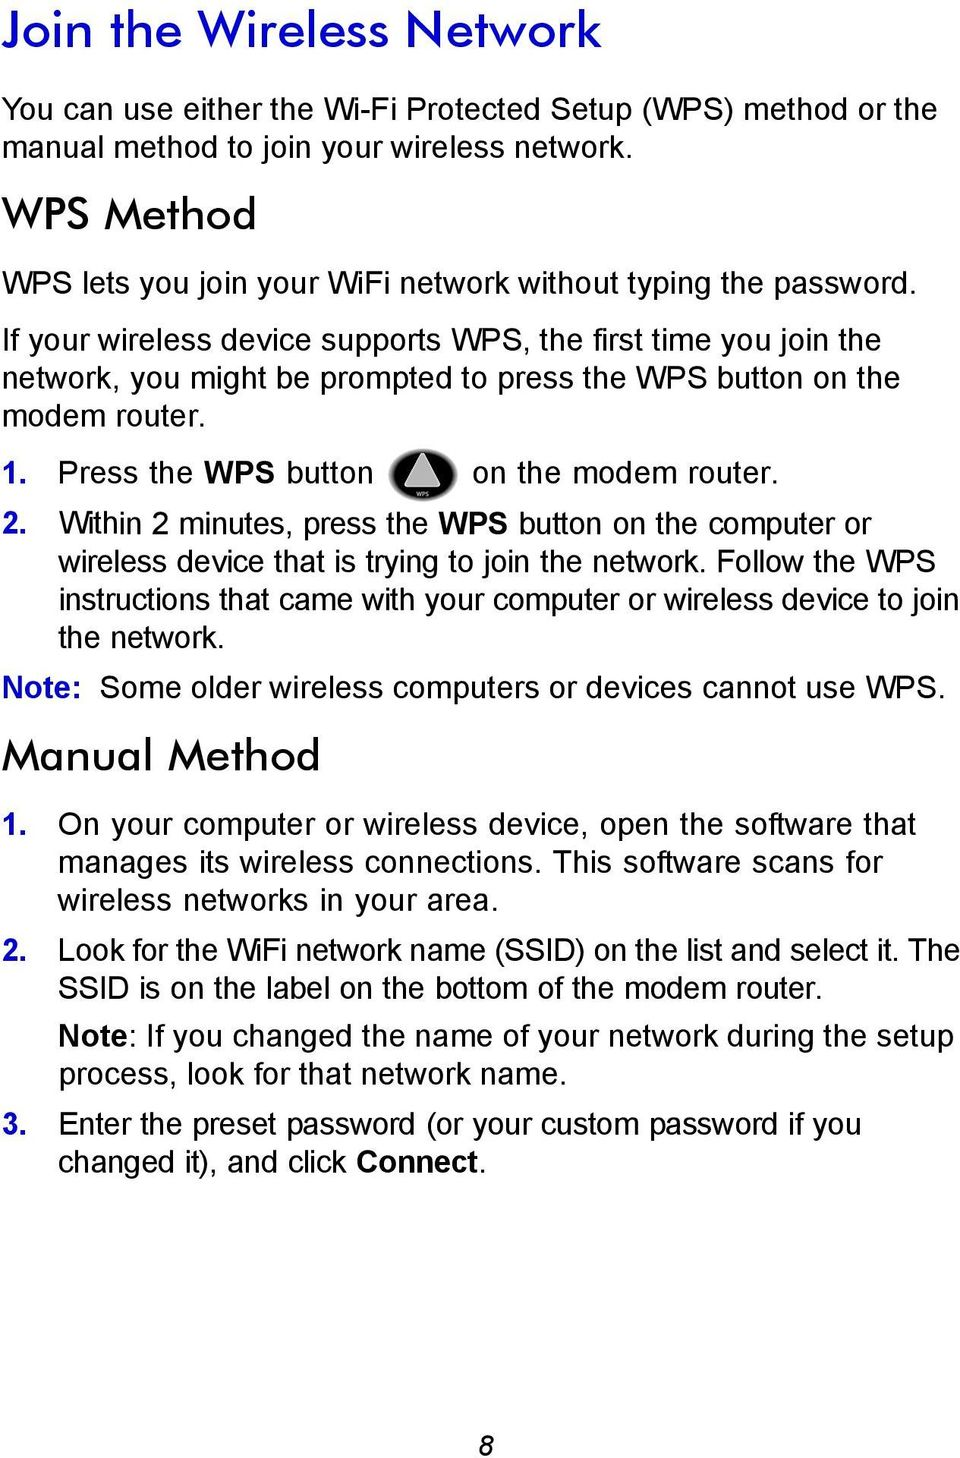 If your wireless device supports WPS, the first time you join the network, you might be prompted to press the WPS button on the modem router. 1. Press the WPS button on the modem router. 2.